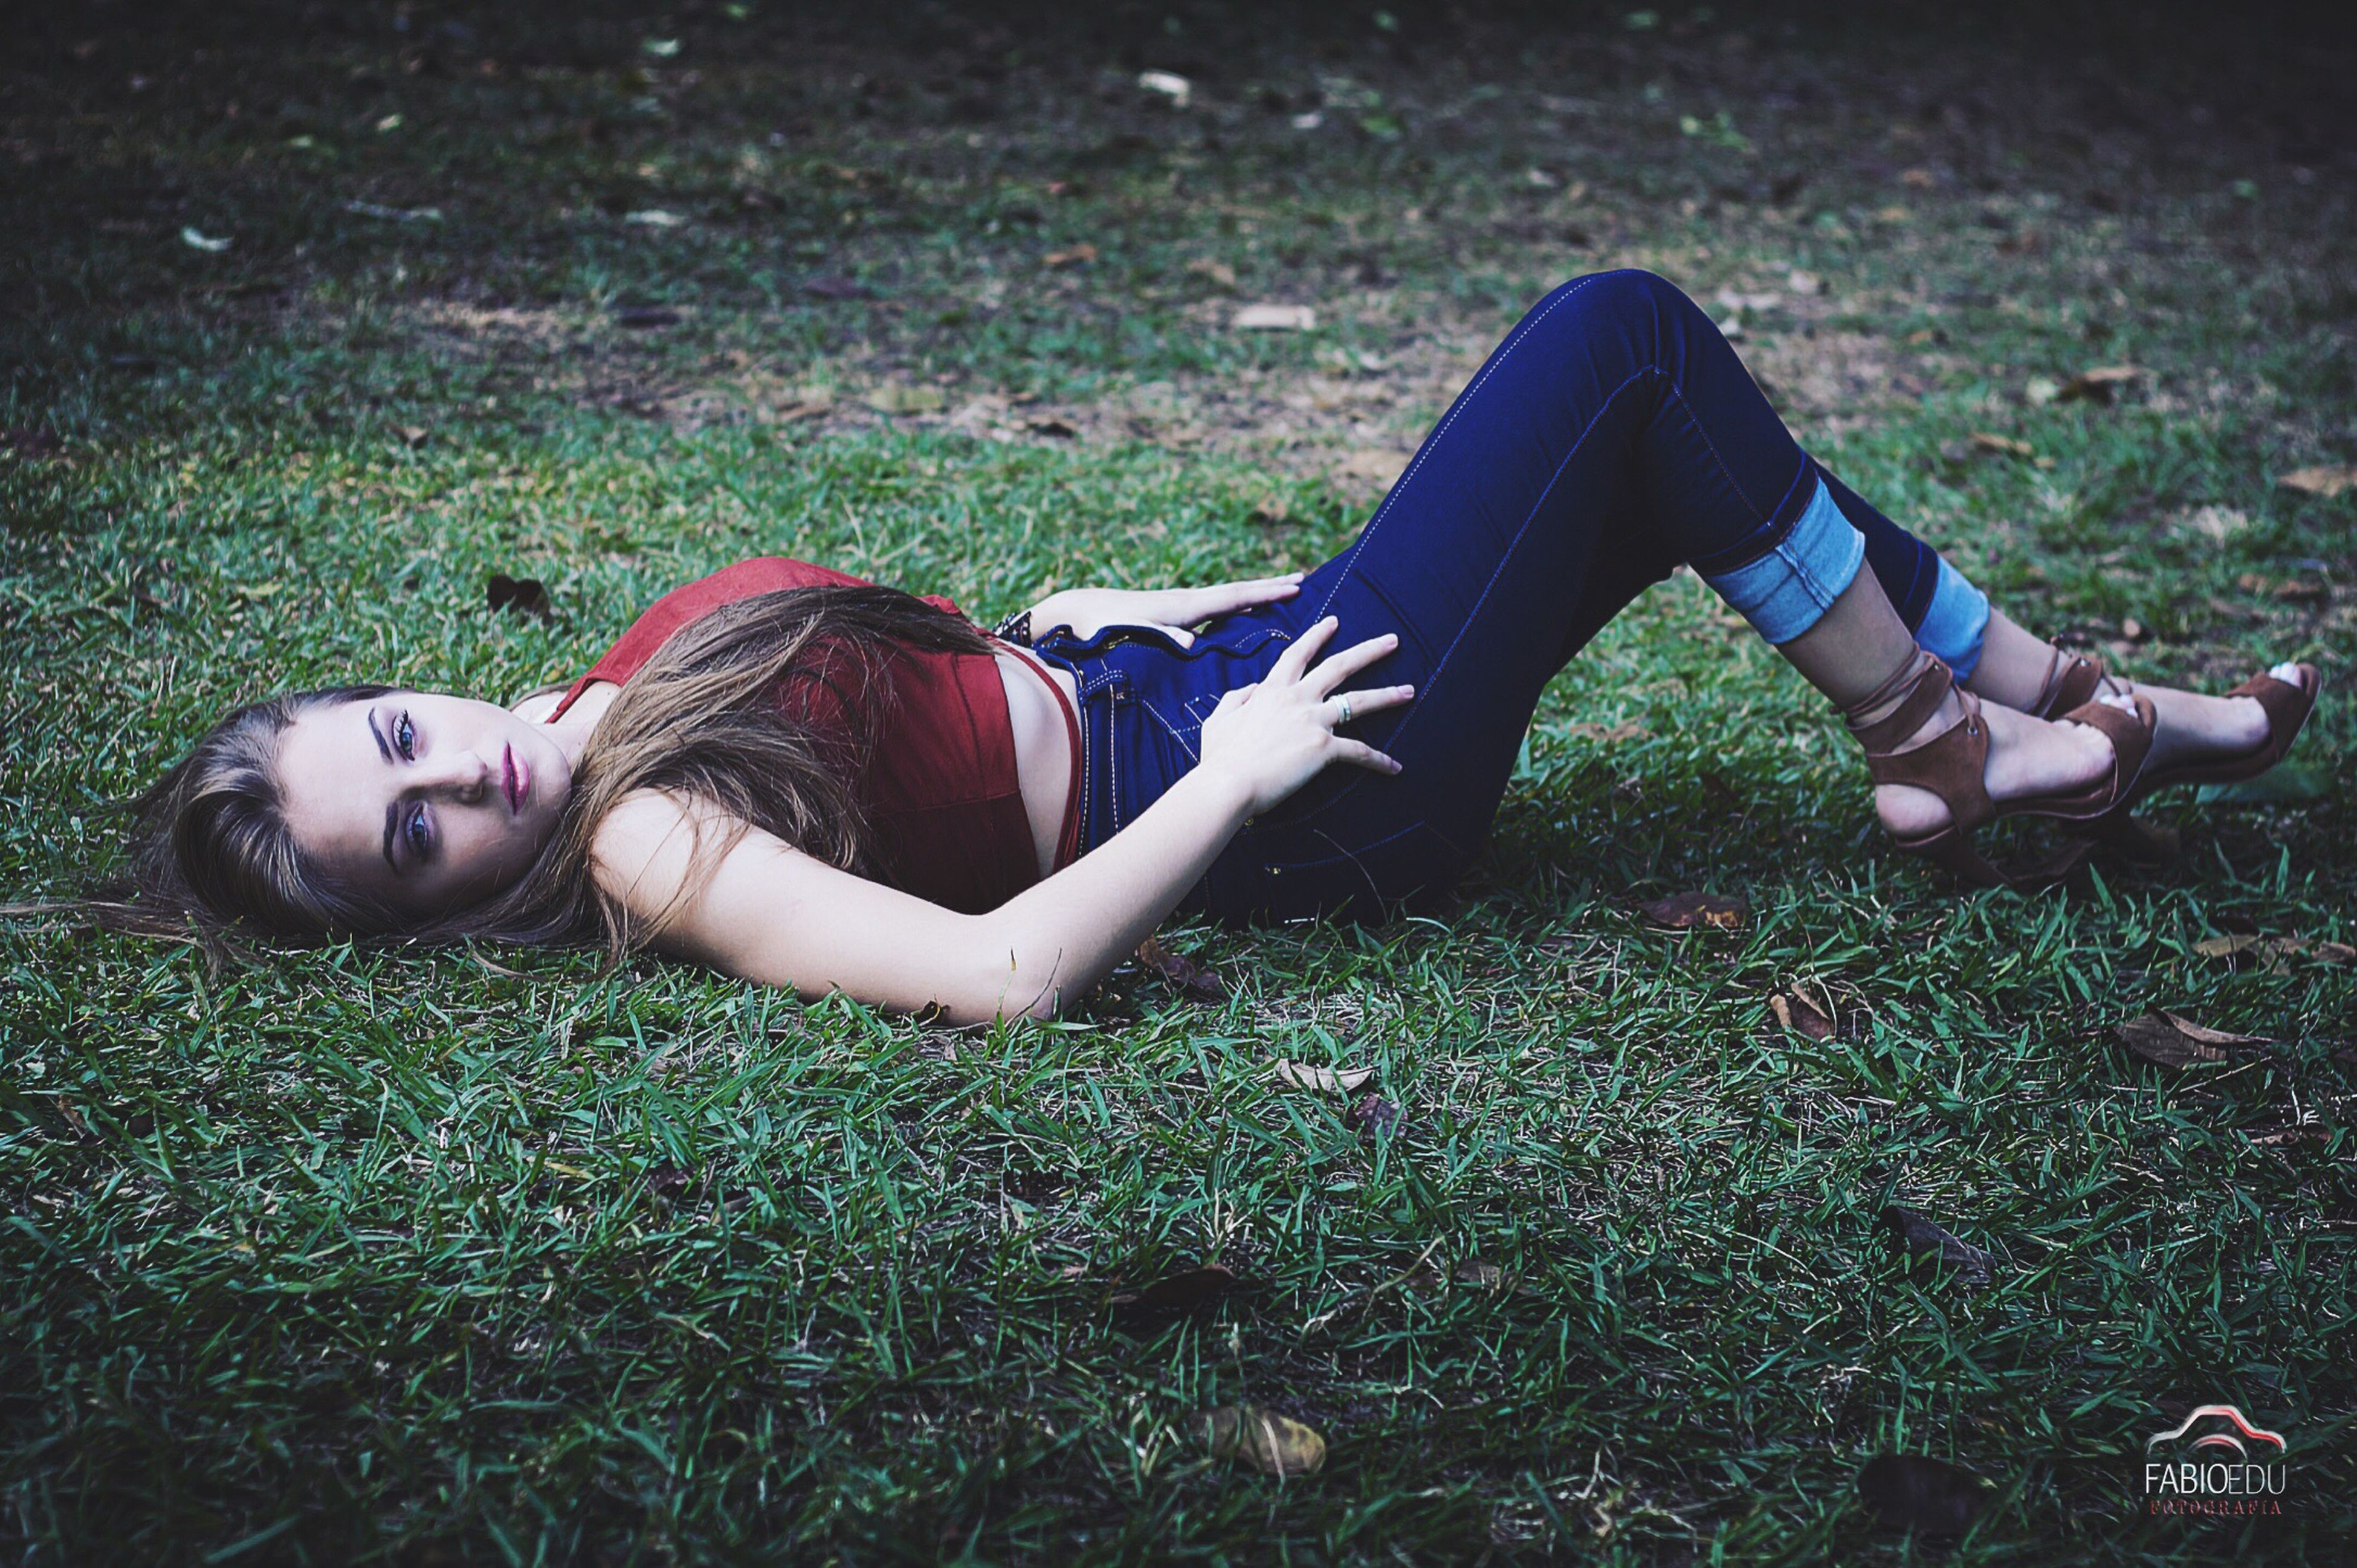 grass, low section, person, lifestyles, shoe, grassy, relaxation, leisure activity, field, lying down, sitting, resting, footwear, relaxing, high angle view, casual clothing, young women, human foot